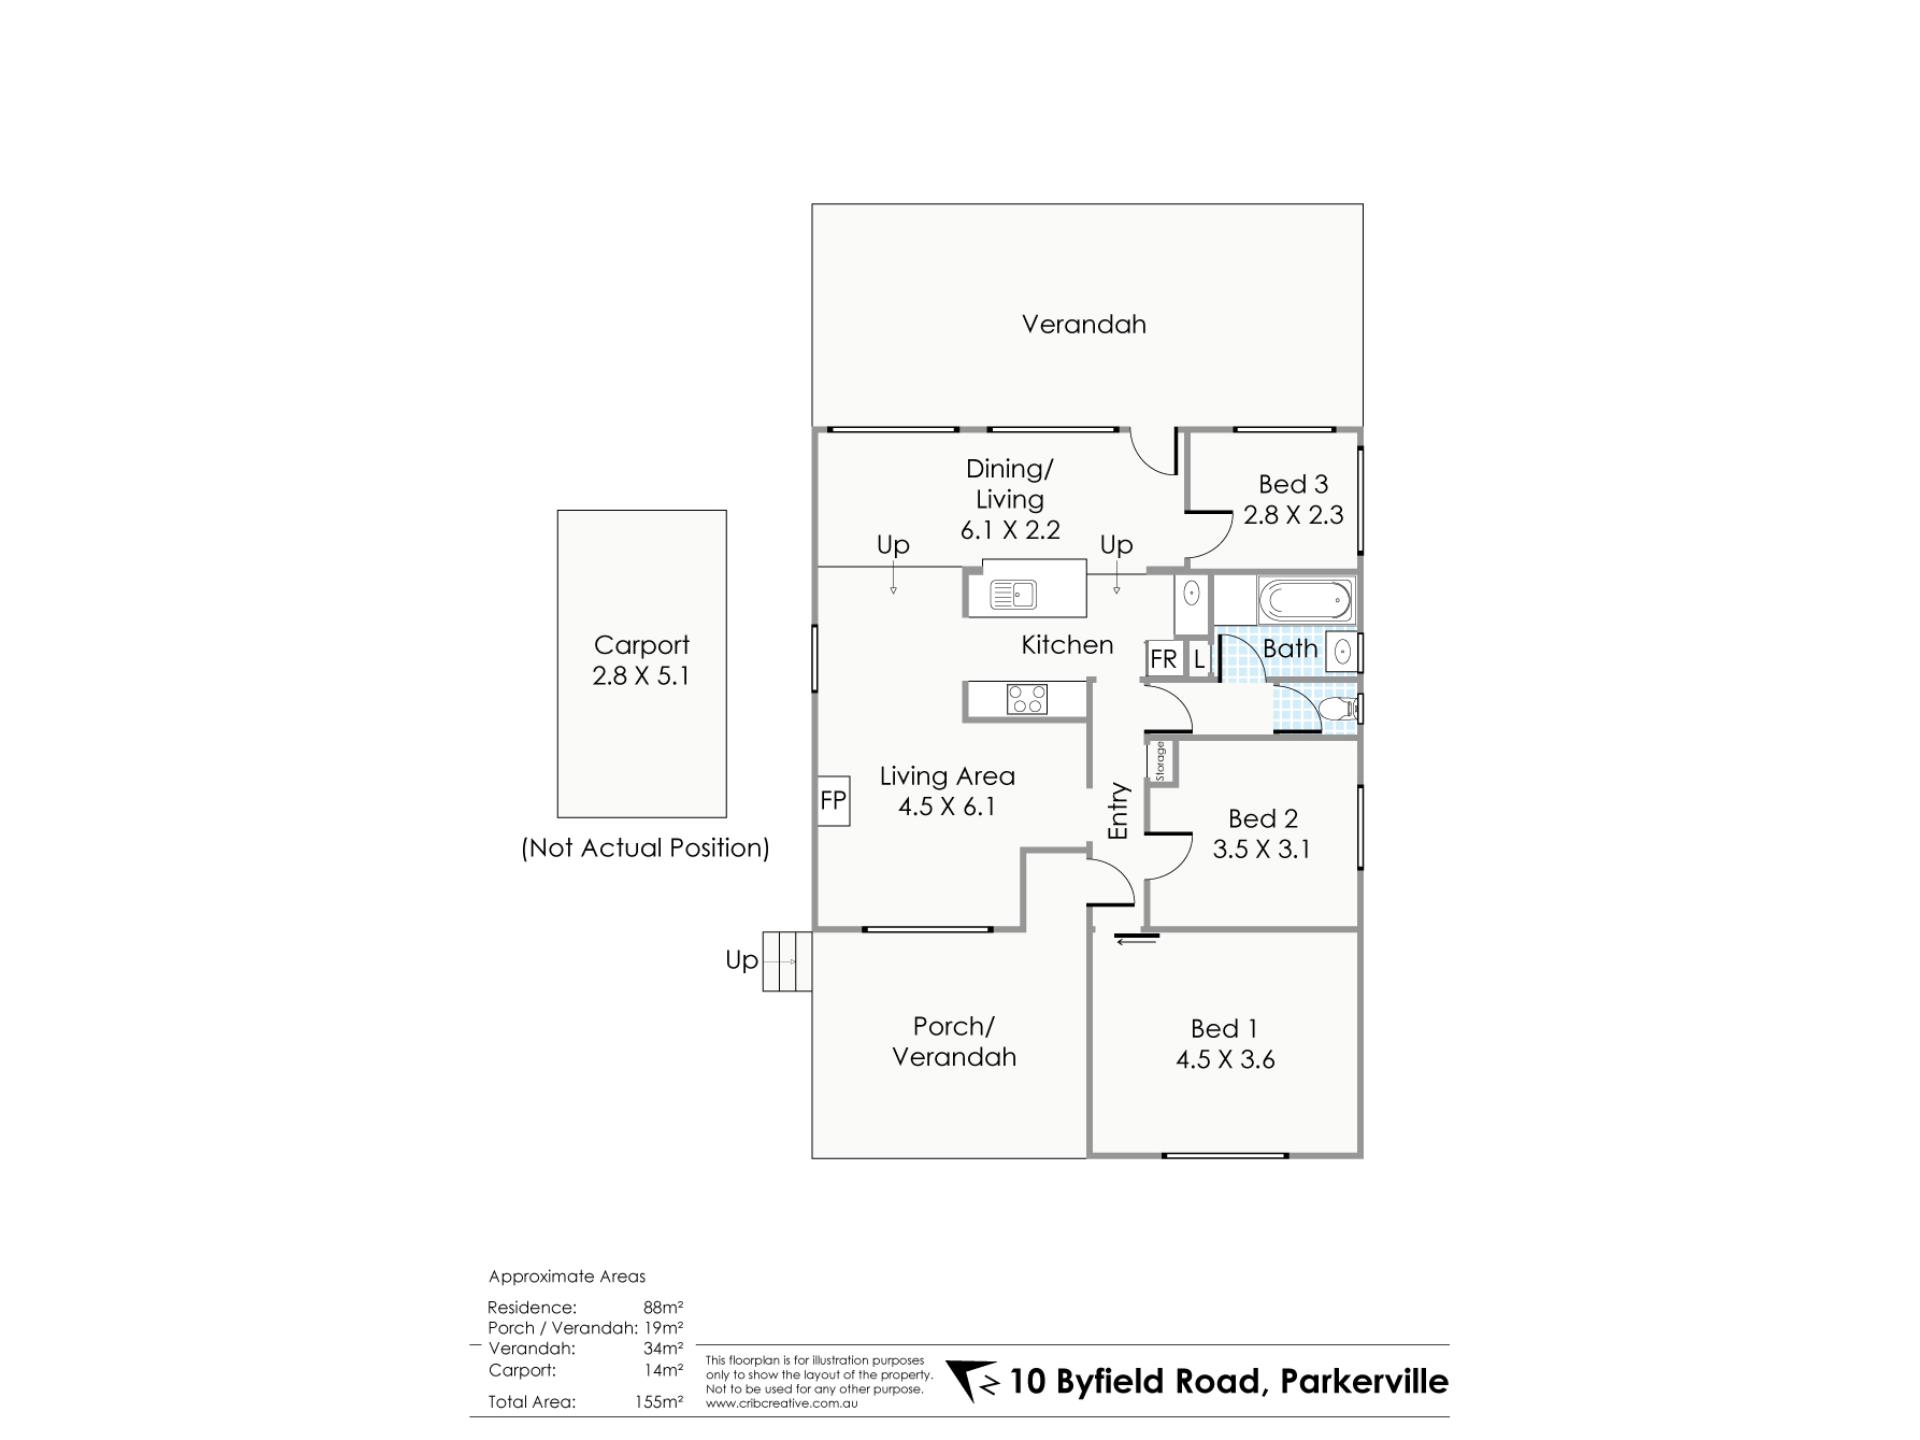 Property for sale in Parkerville : Earnshaws Real Estate